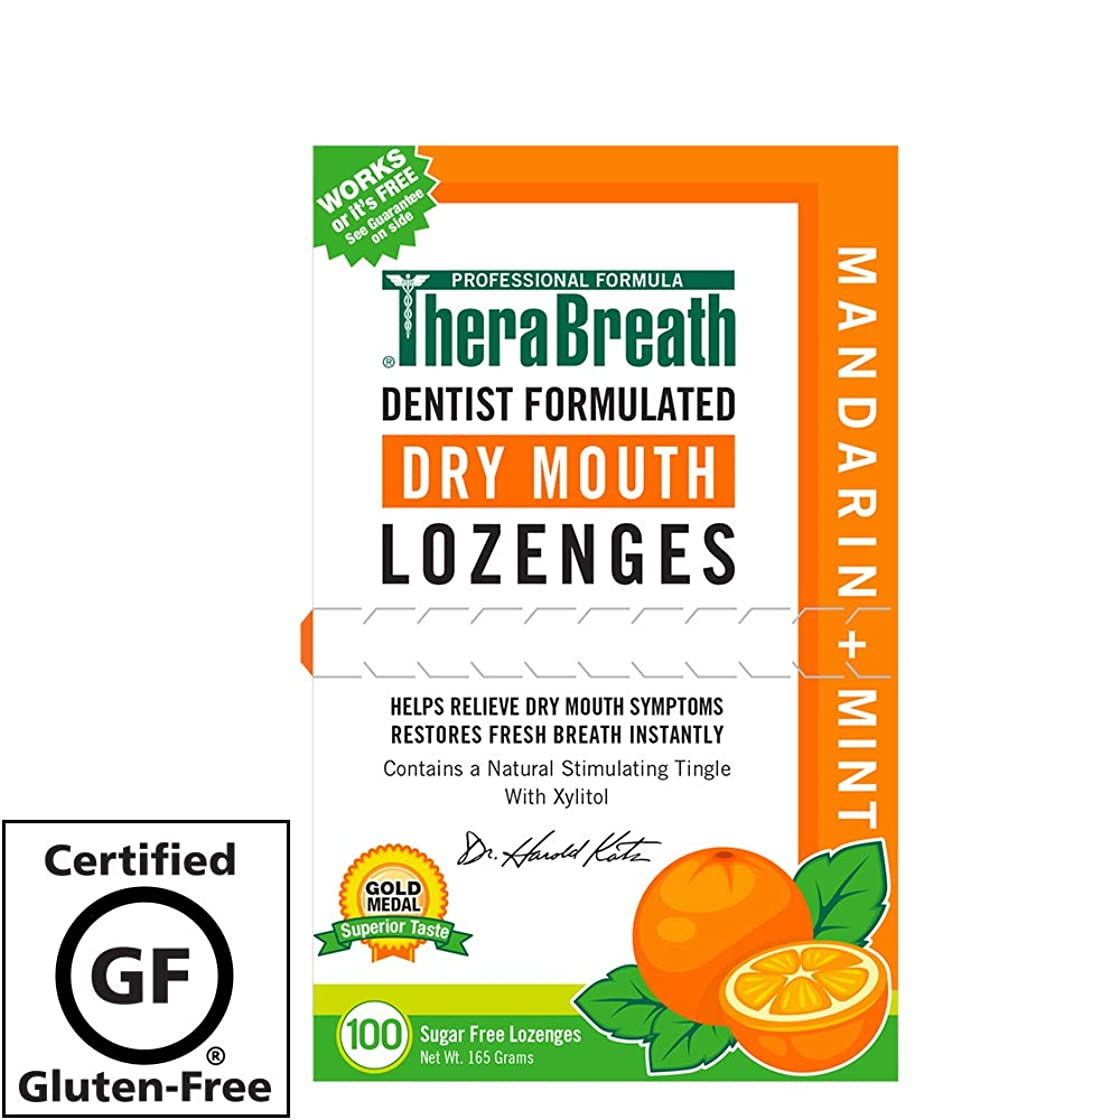 報酬の飢えた空いているTheraBreath, Dry Mouth Lozenges, Mandarin Mint, 100 Wrapped Lozenges, 165 g